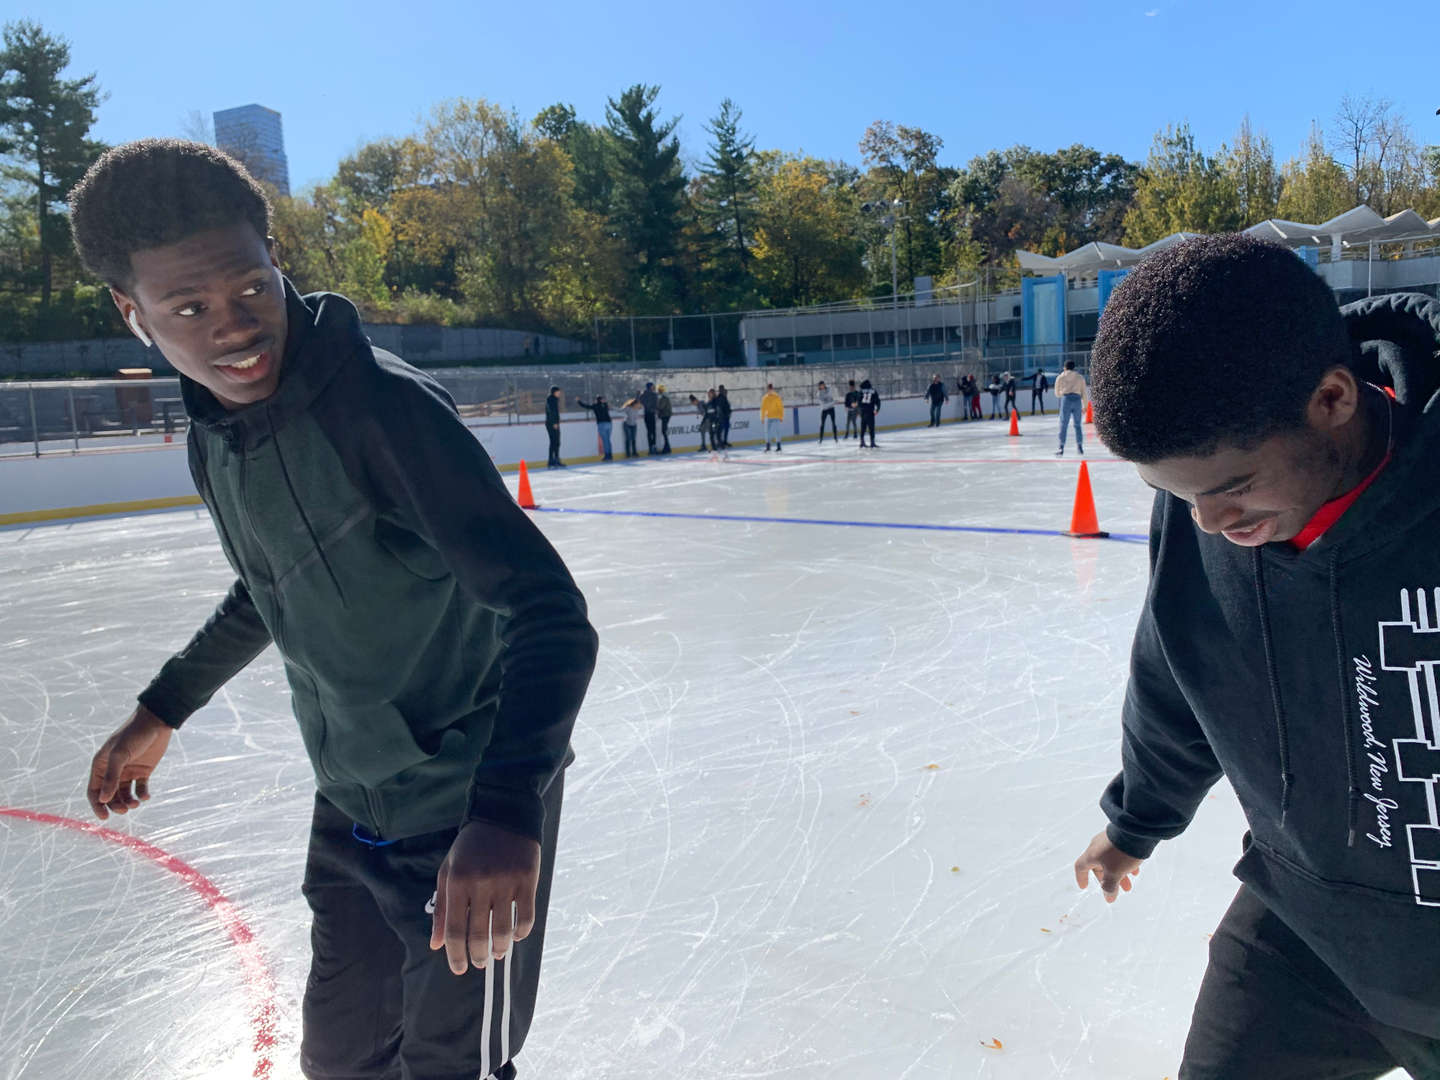 Two students watch out for each other as they skate side by side